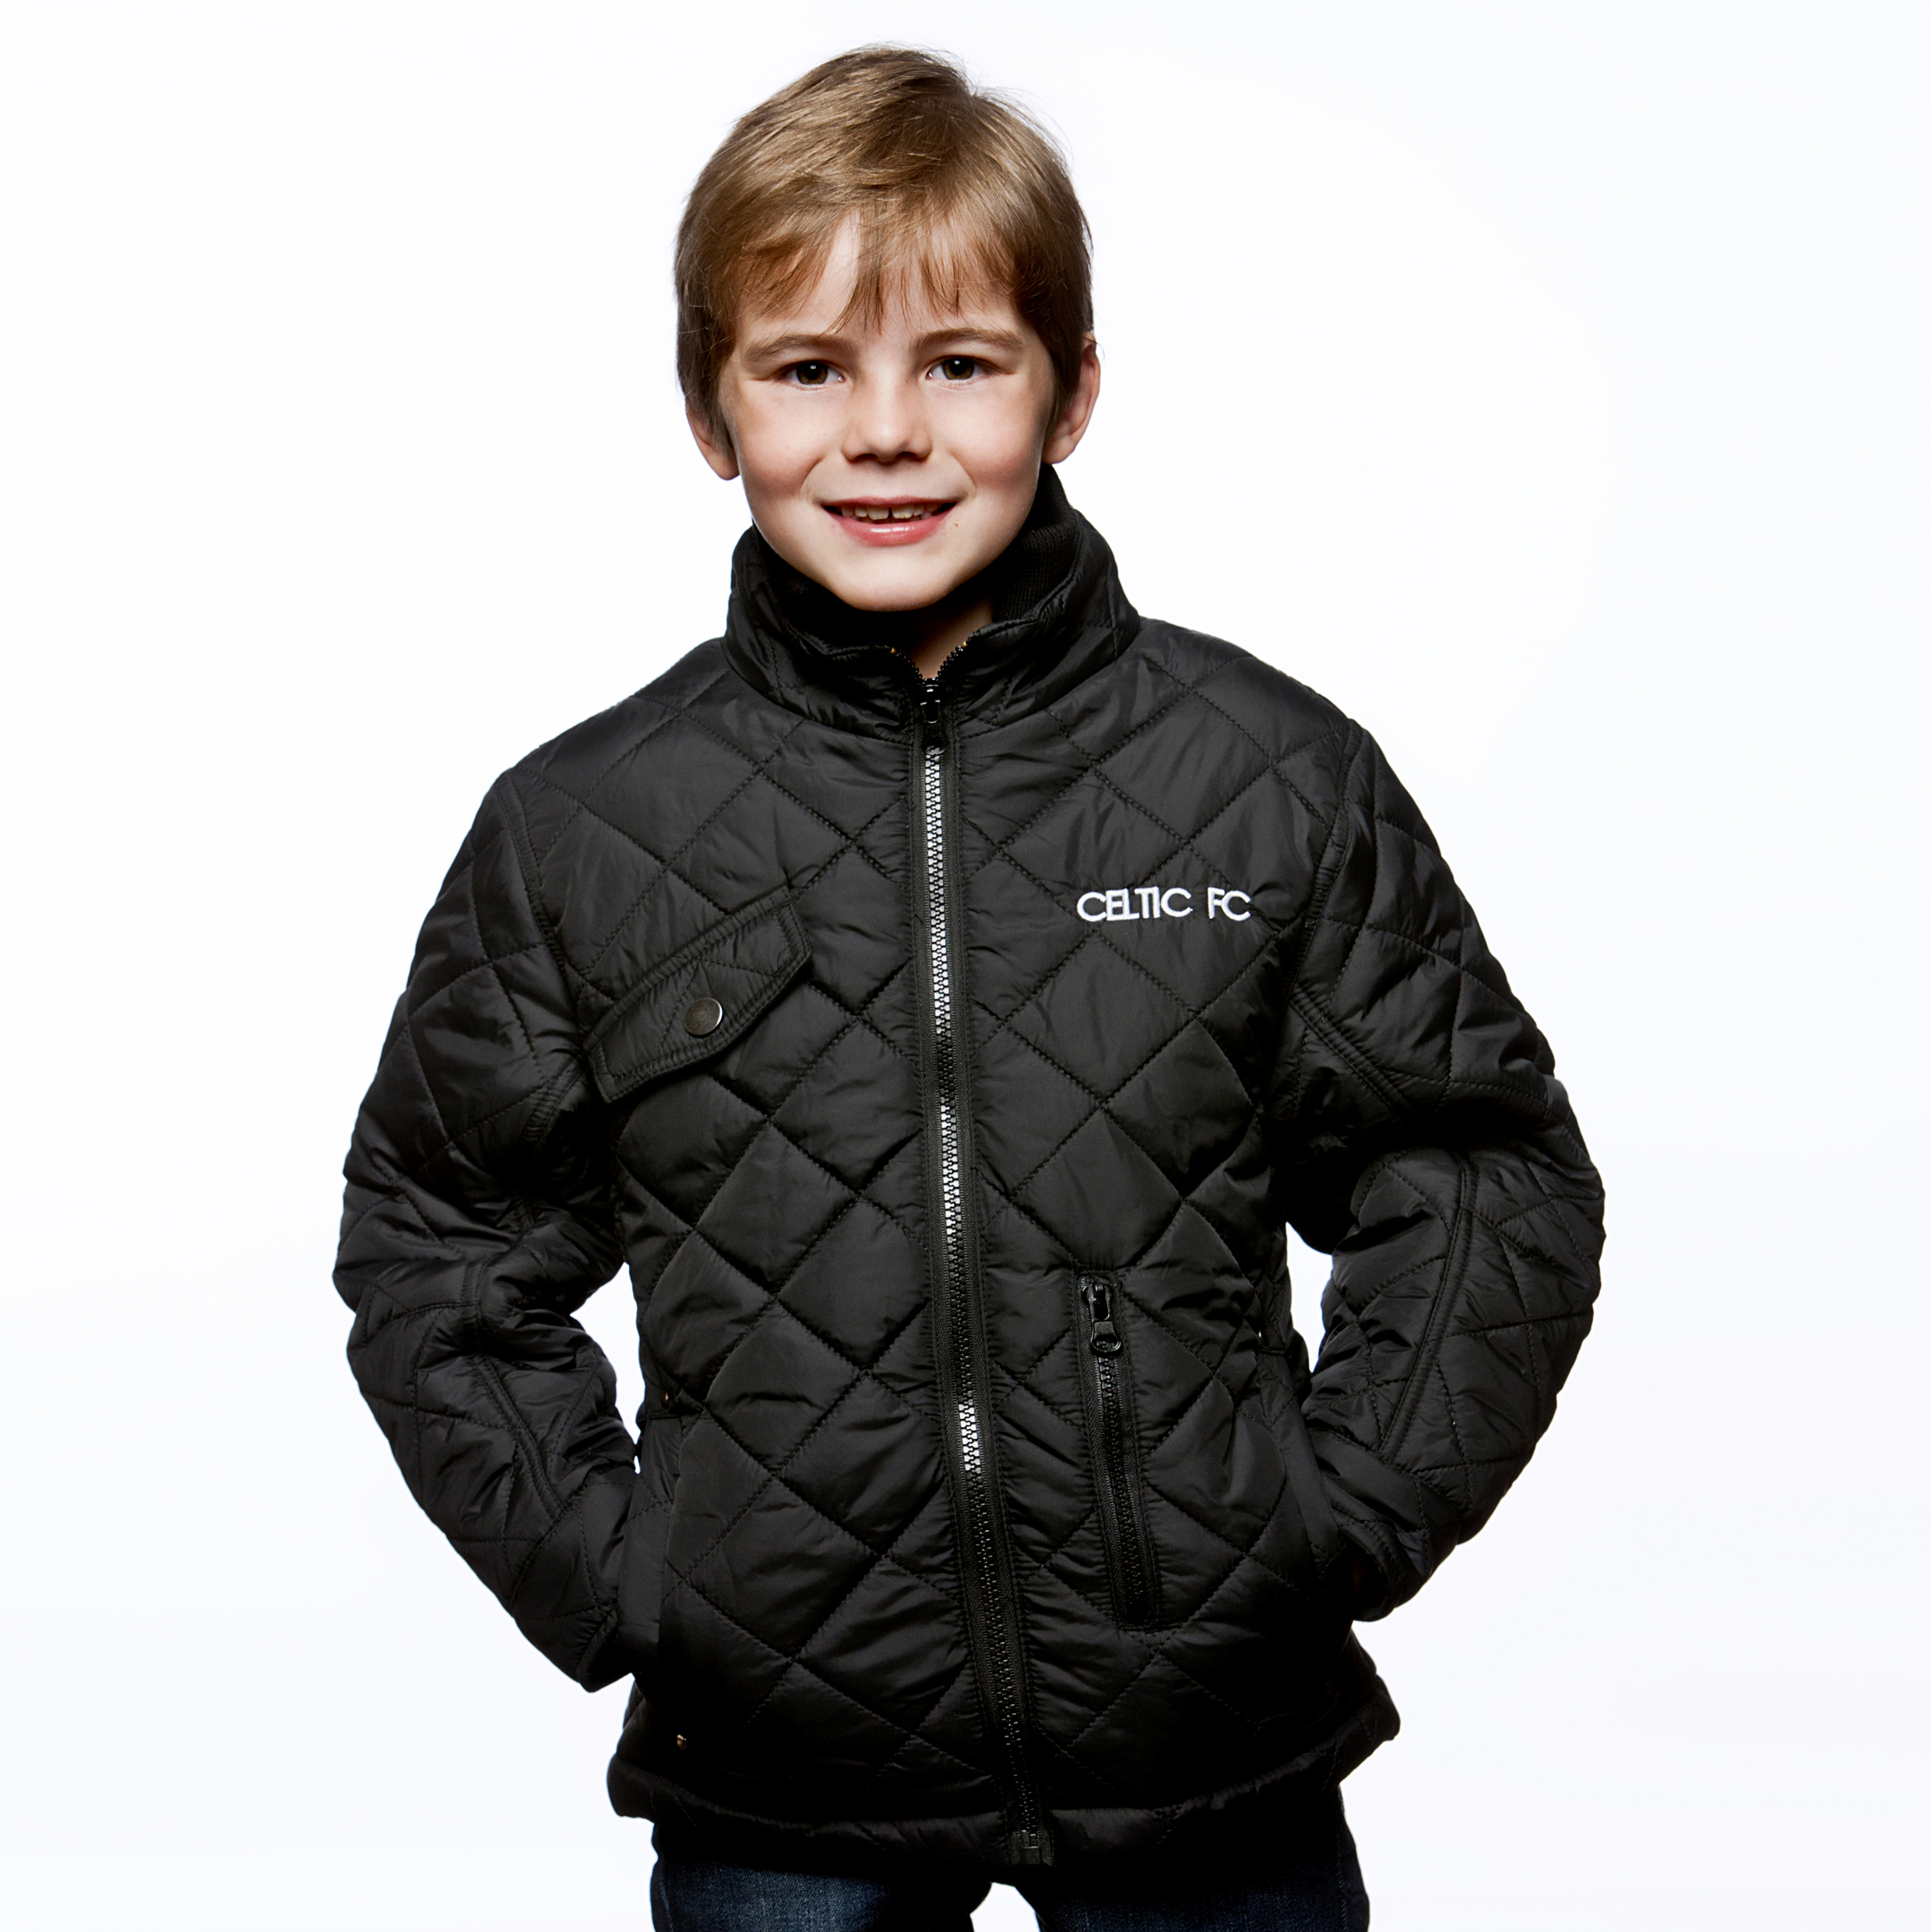 Celtic Quilted Jacket - Black - Boys